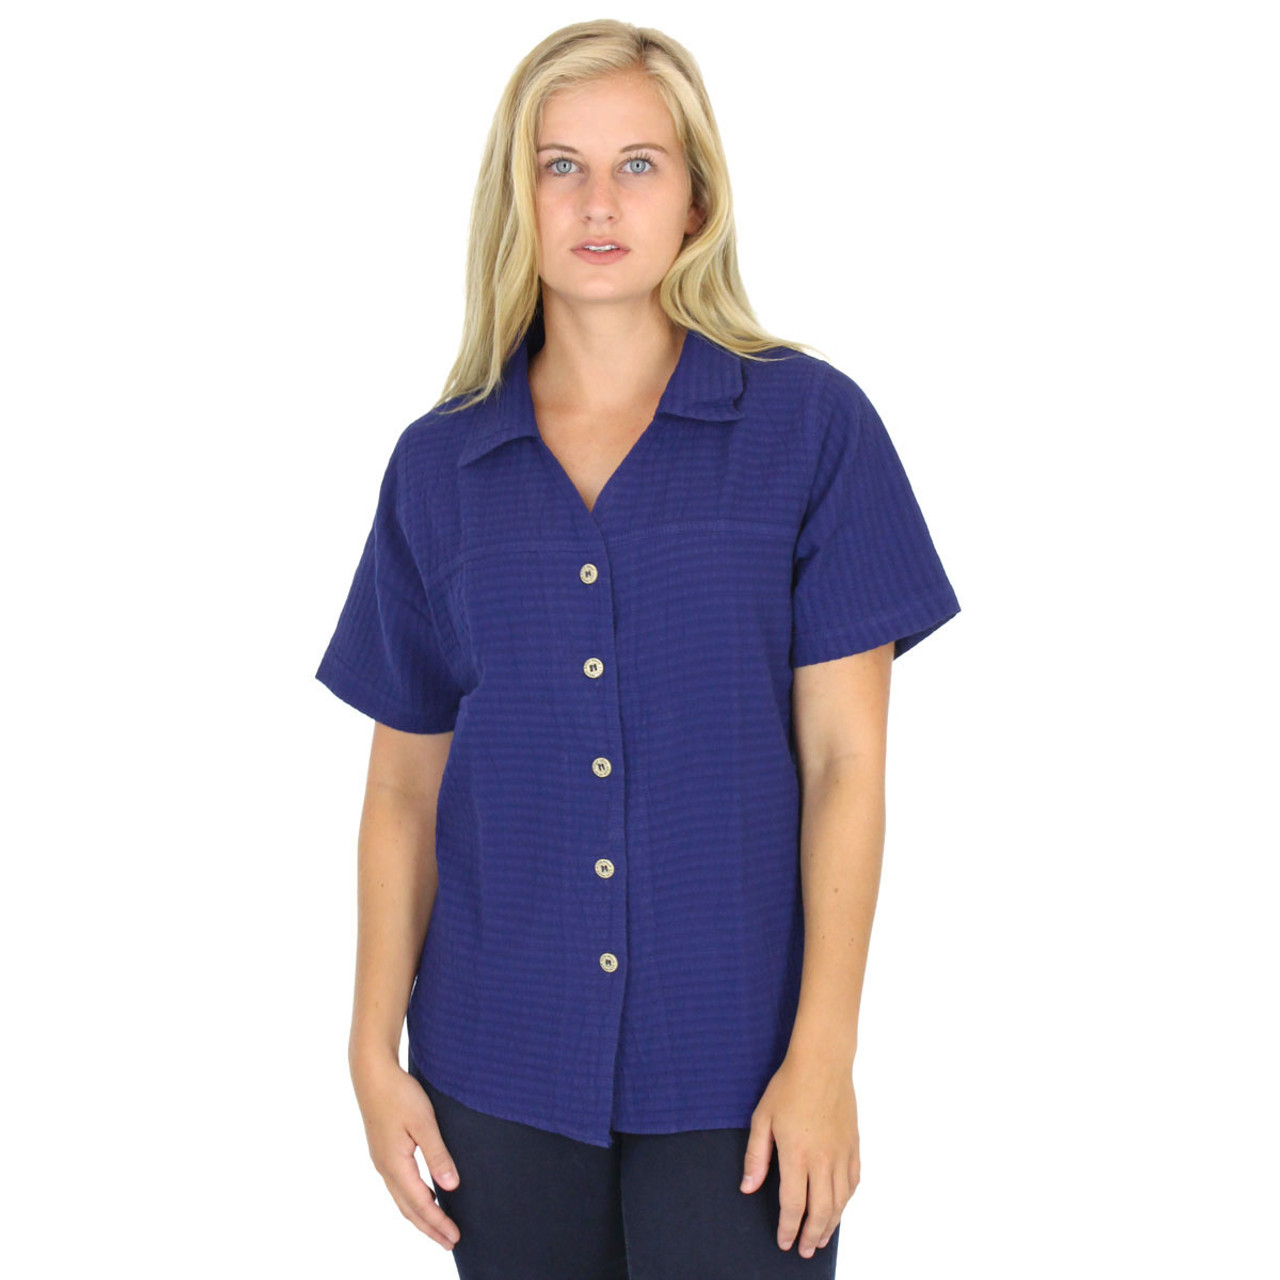 9f4dabf1 Women's Cotton Shirts Made In USA | Seersucker Button Blouse | Ezze Wear